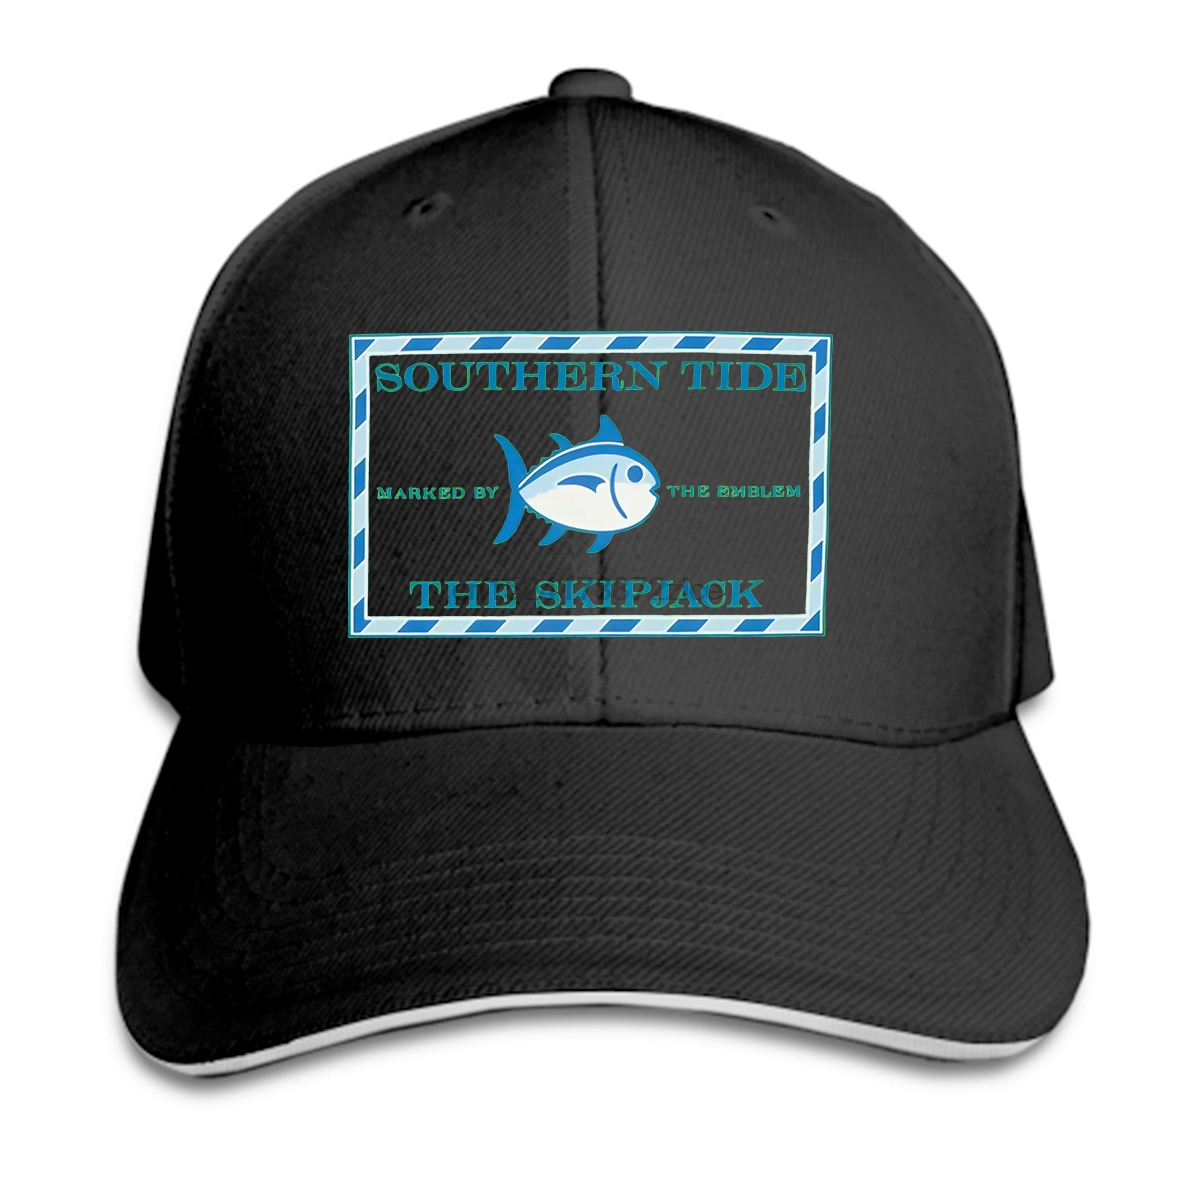 3f8943a2e0f9b Buy southern hats and get free shipping on AliExpress.com